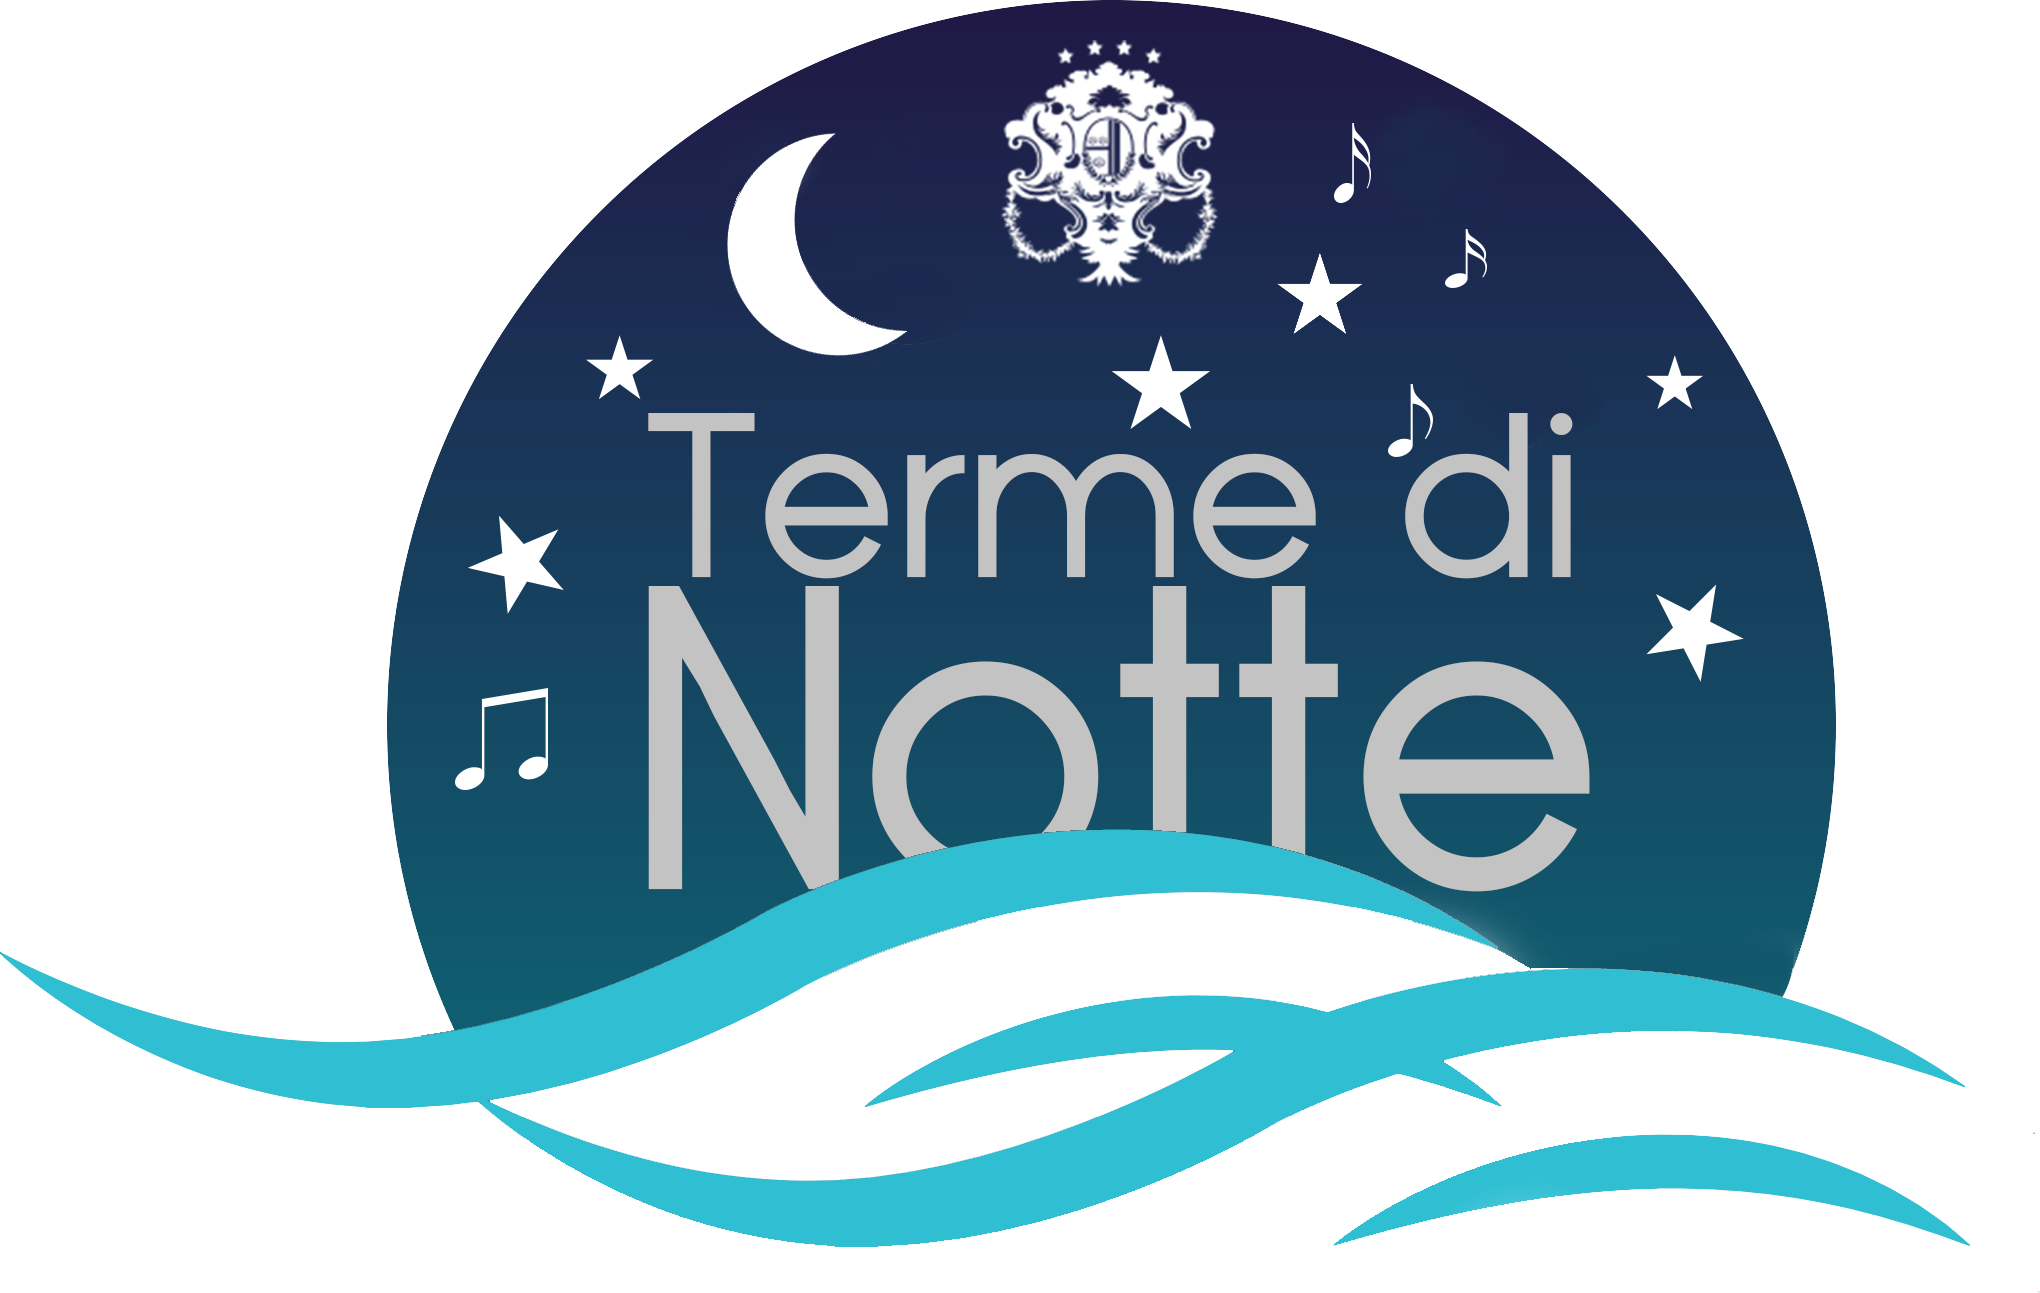 Terme di Notte Pool Party